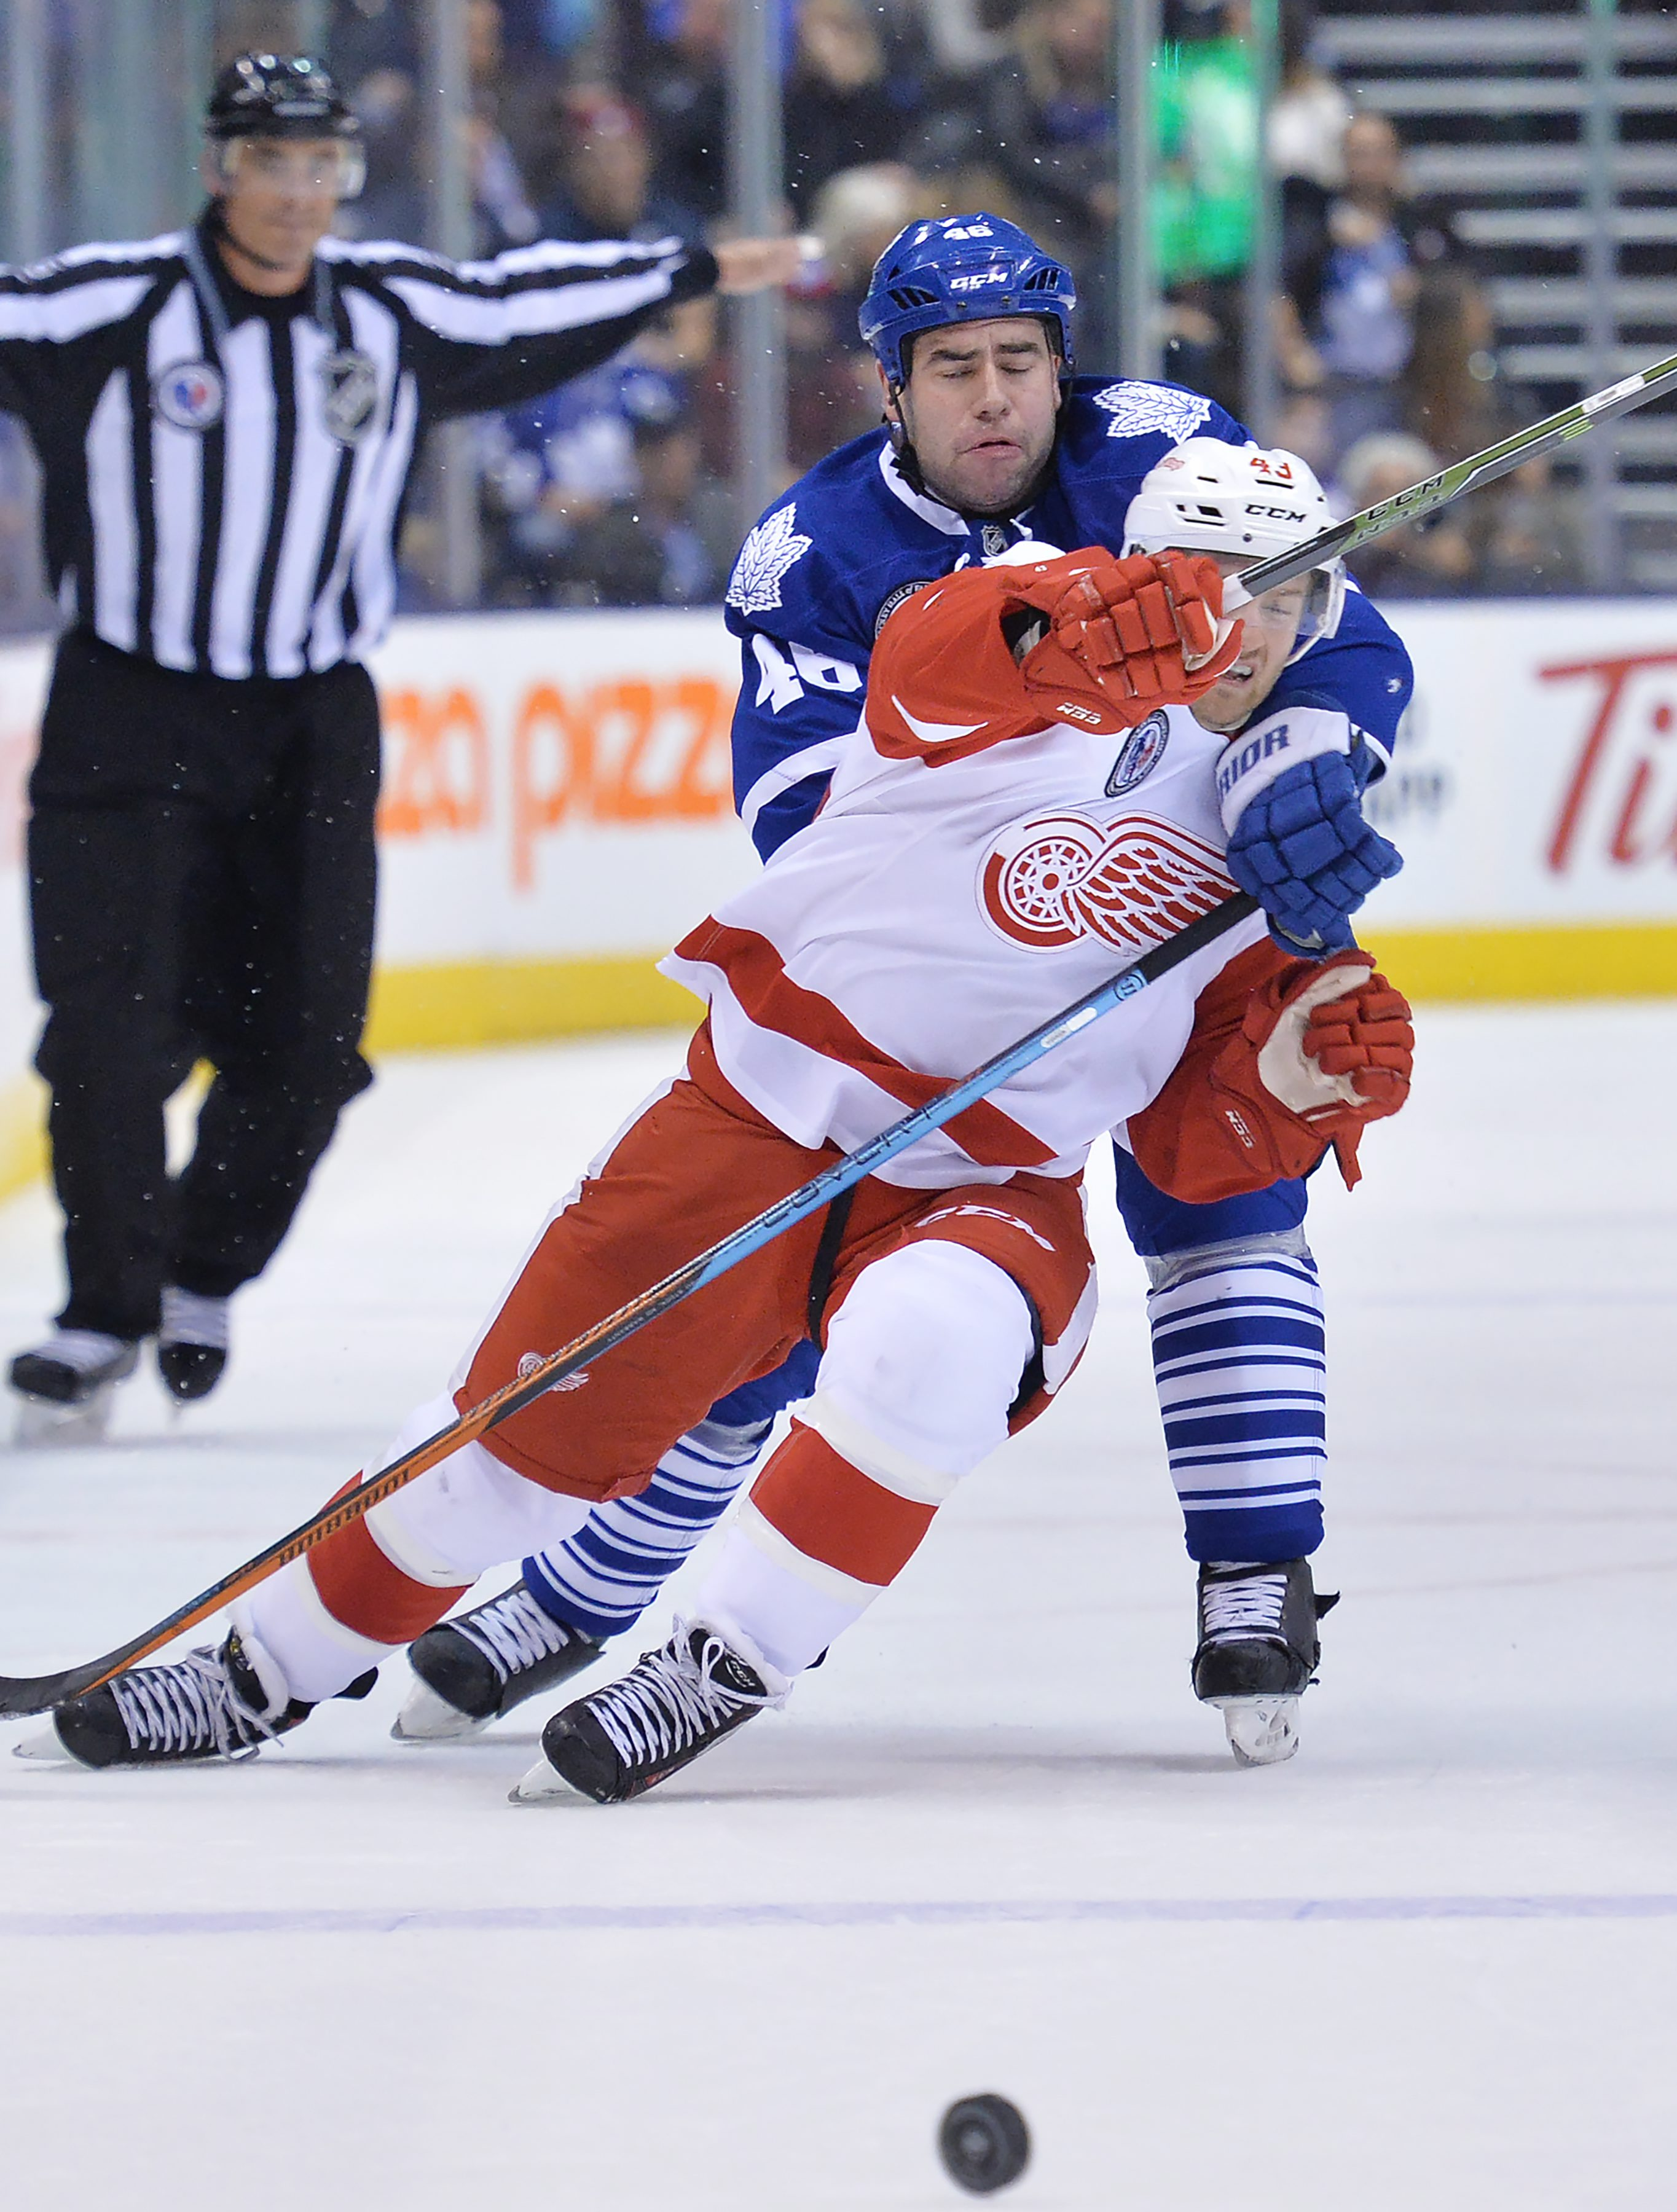 Toronto Maple Leafs' defender Roman Polack (46) trips Detroit Red Wings forward Darren Helm (43) during first-period NHL hockey game action in Toronto, Friday, Nov. 6, 2015. (Nathan Denette/The Canadian Press via AP) MANDATORY CREDIT